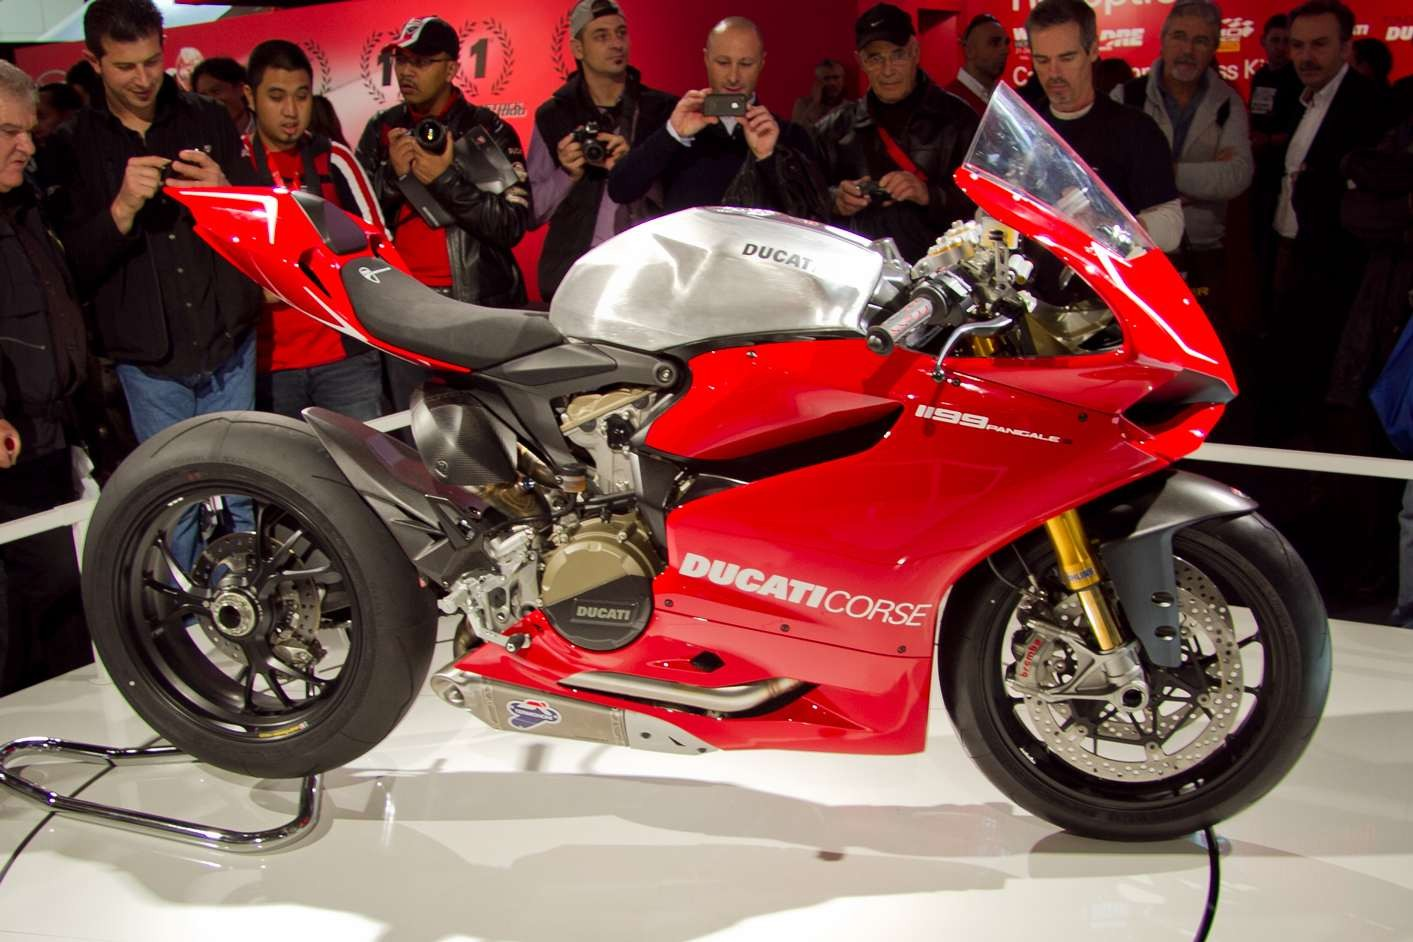 ducati case Back to classics | providing you with the ultimate ducati experience by supplying top quality motorcycles, parts and restoration services.